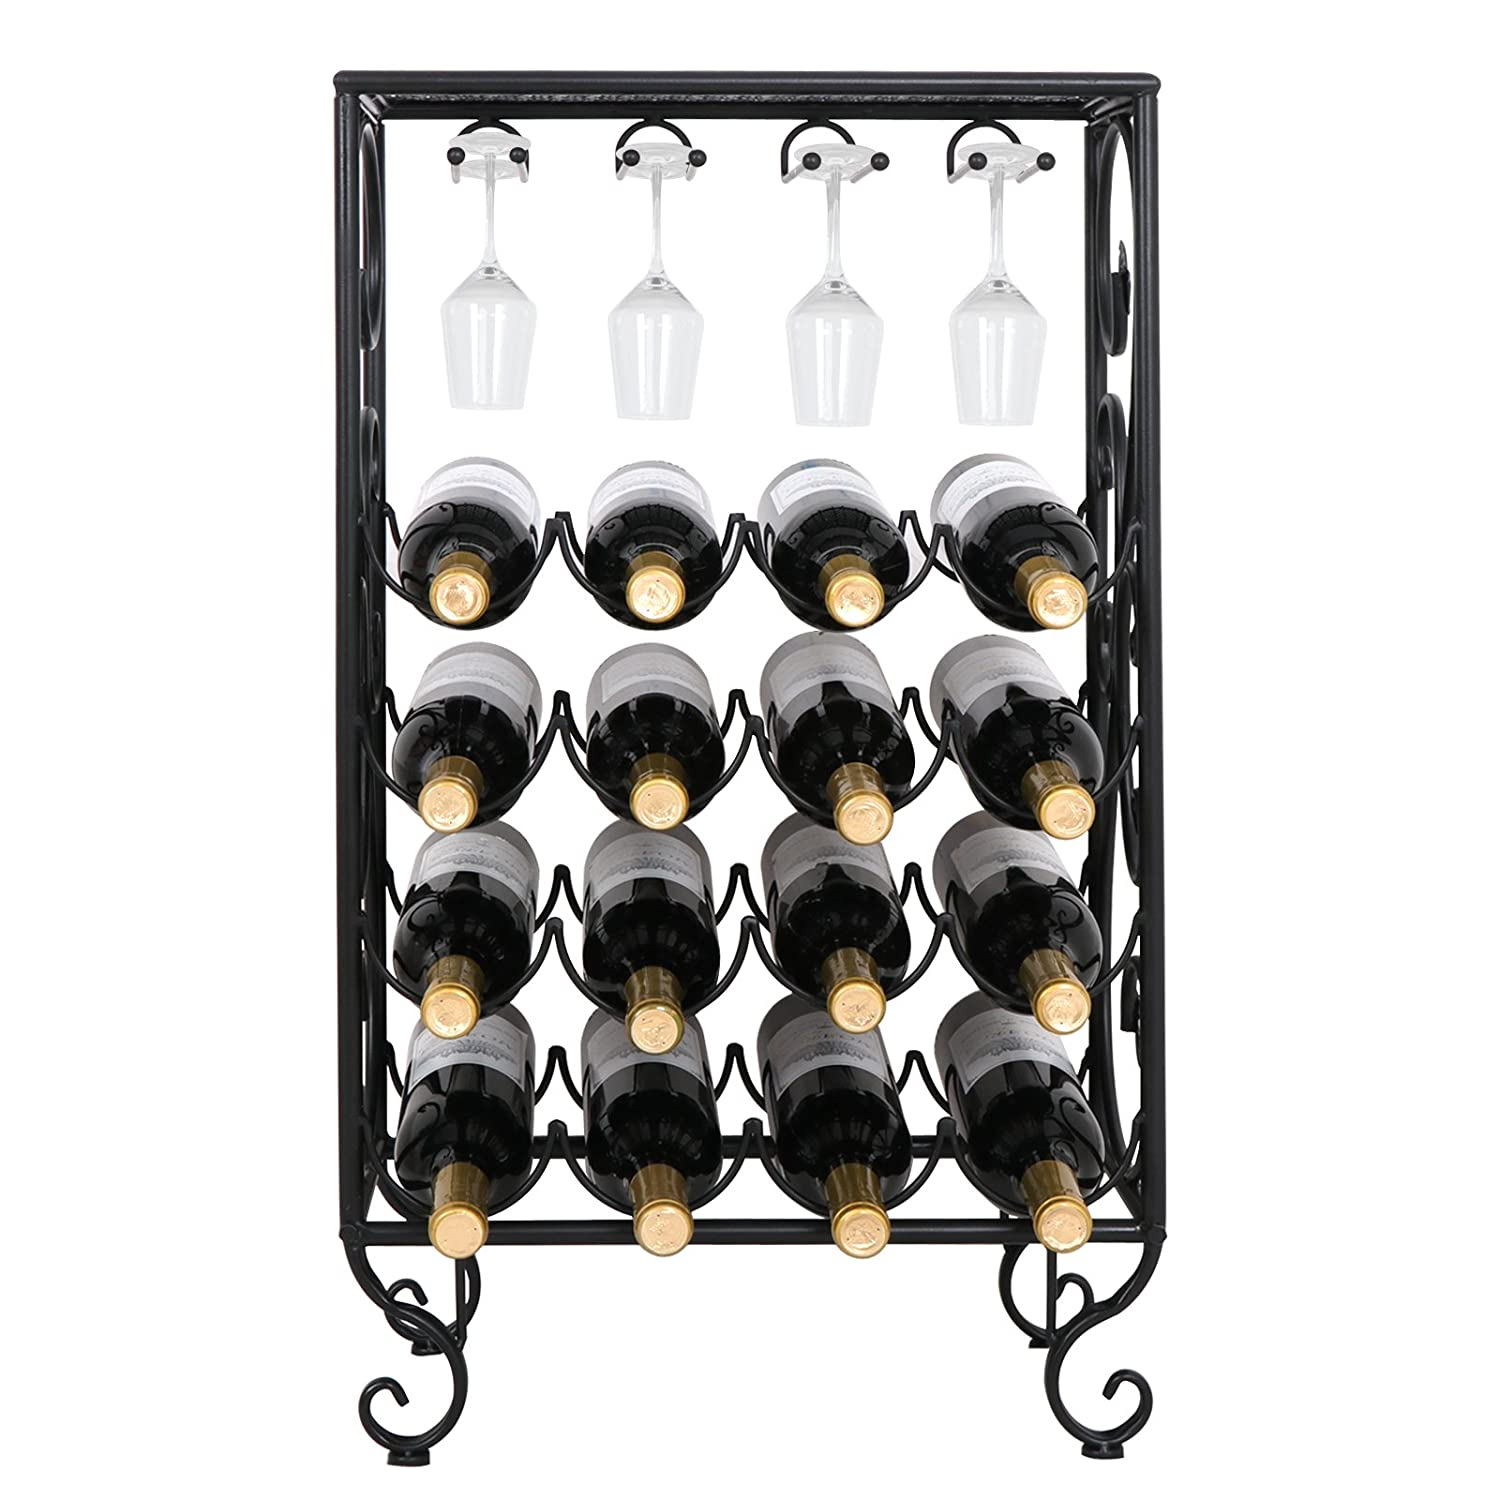 Smartxchoices 16 Bottle Wine Rack with Glass Holder, Table Top Free Standing Wine Bottle Holder Display Shelf Storage Rack Metal Small Black